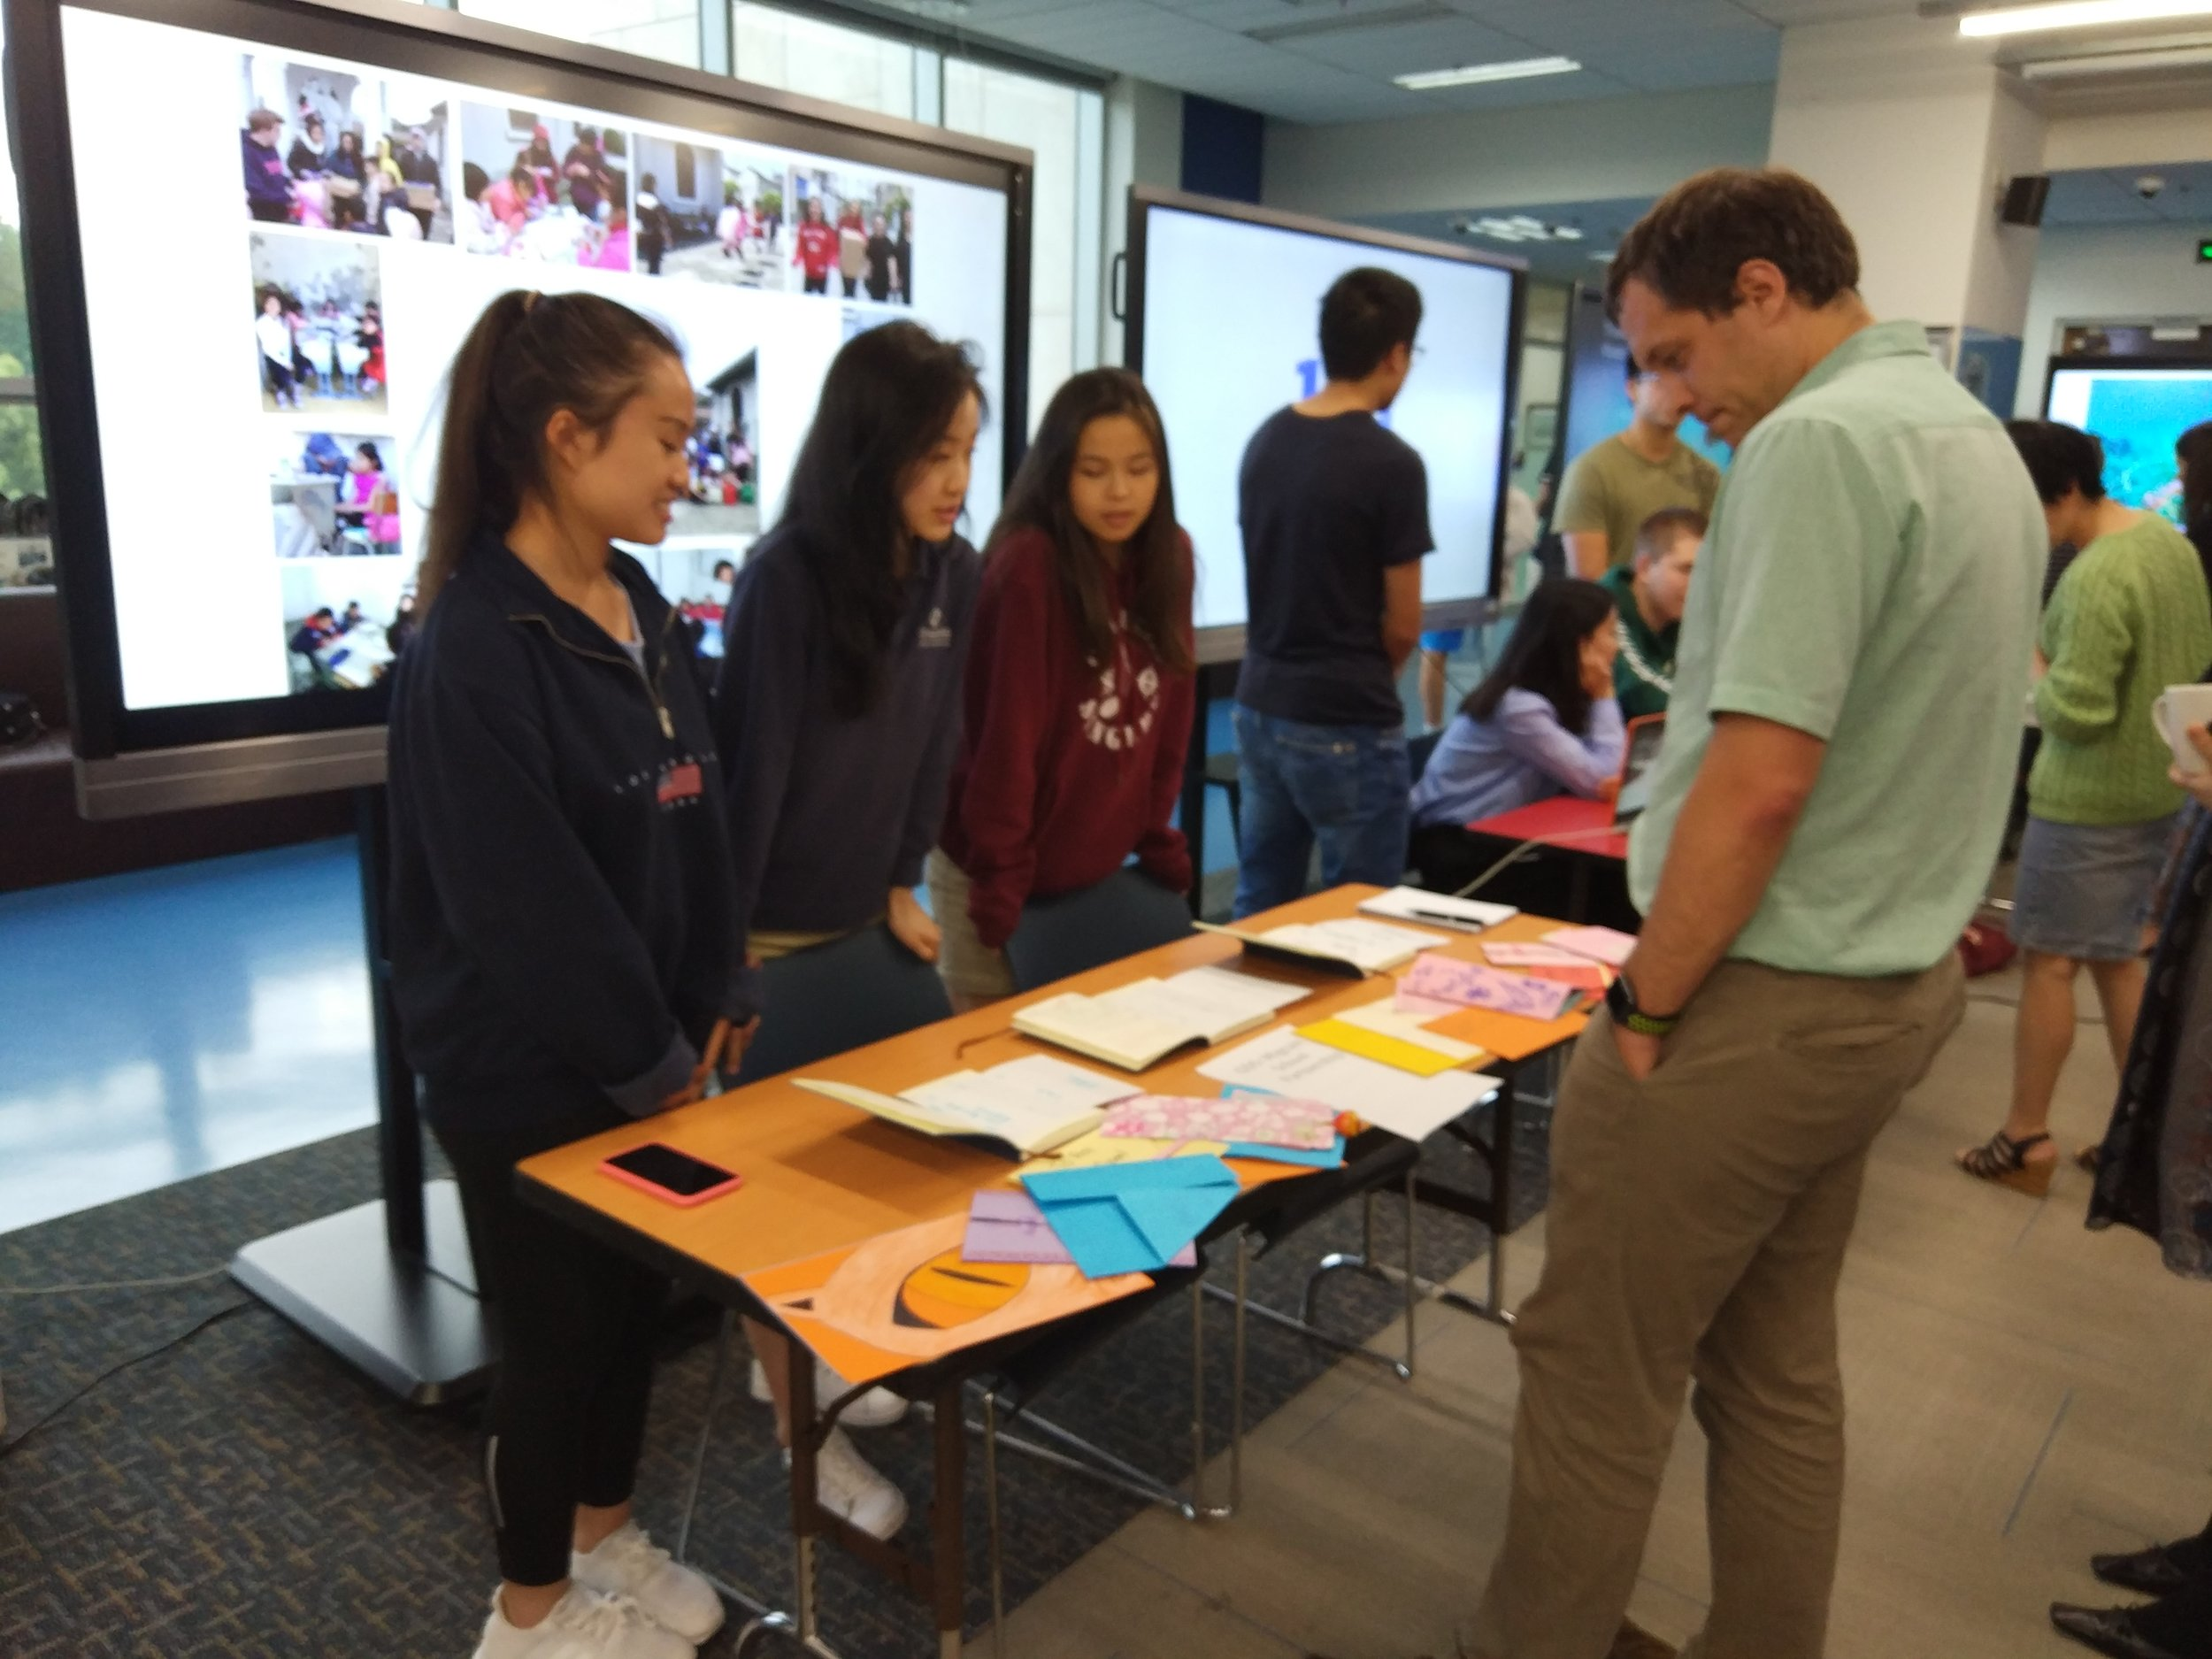 A Global Development Studies group that established a partnership with a local migrant community and school this year.